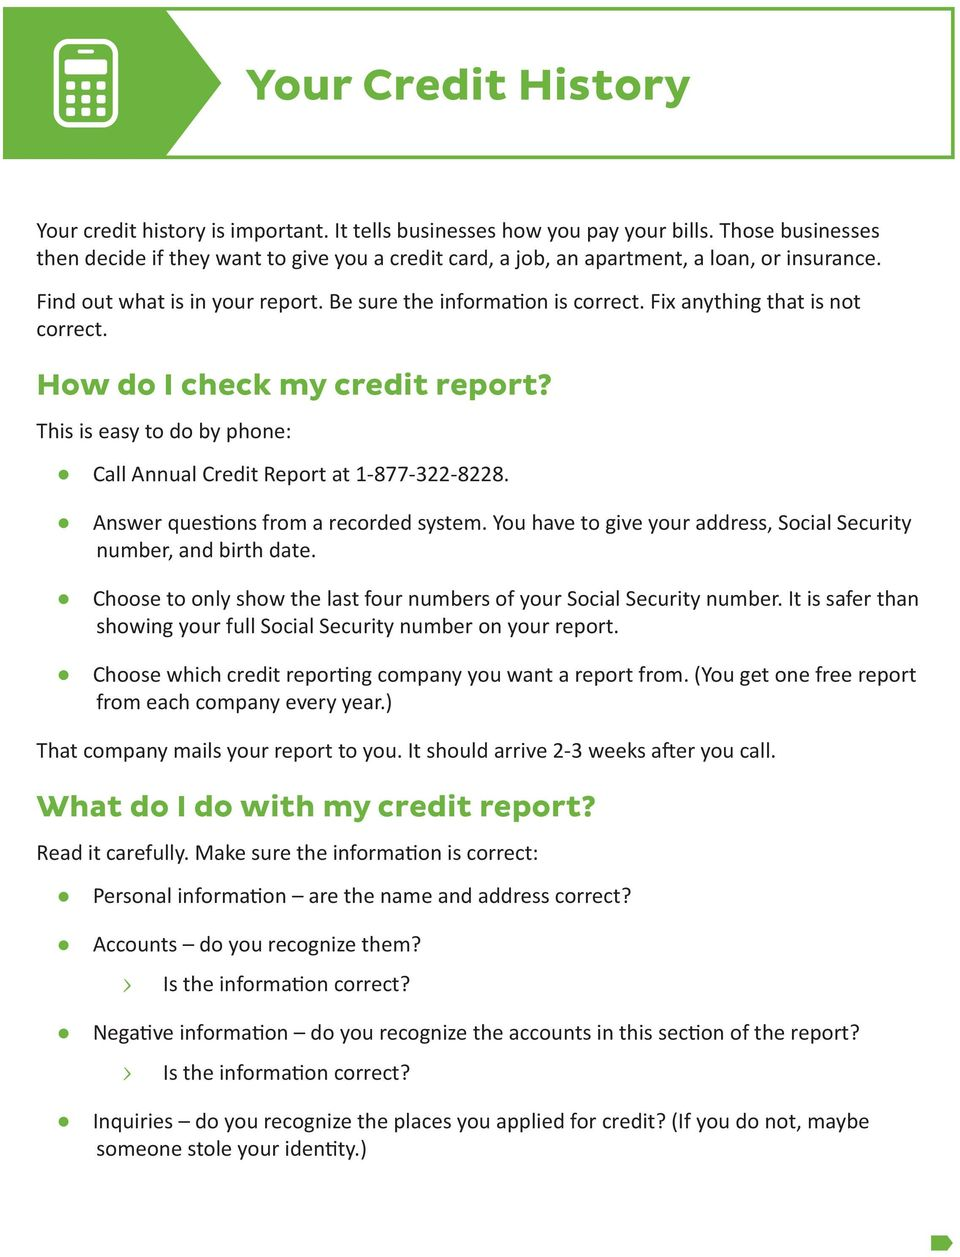 Fix anything that is not correct. How do I check my credit report? This is easy to do by phone: Call Annual Credit Report at 1-877-322-8228. Answer questions from a recorded system.